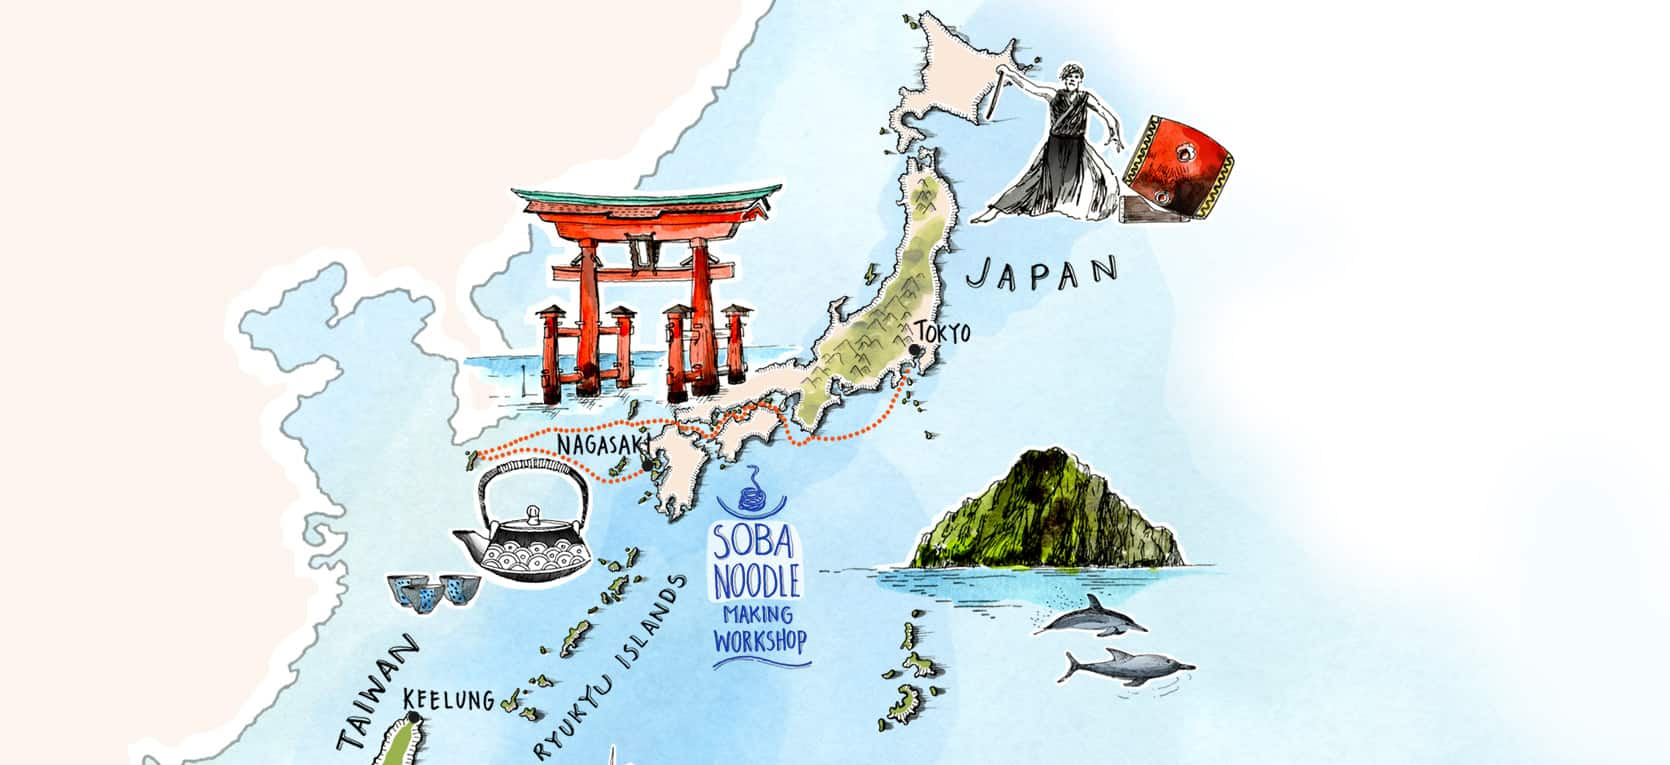 Small Islands of The World - Toyko to Nagasaki Map